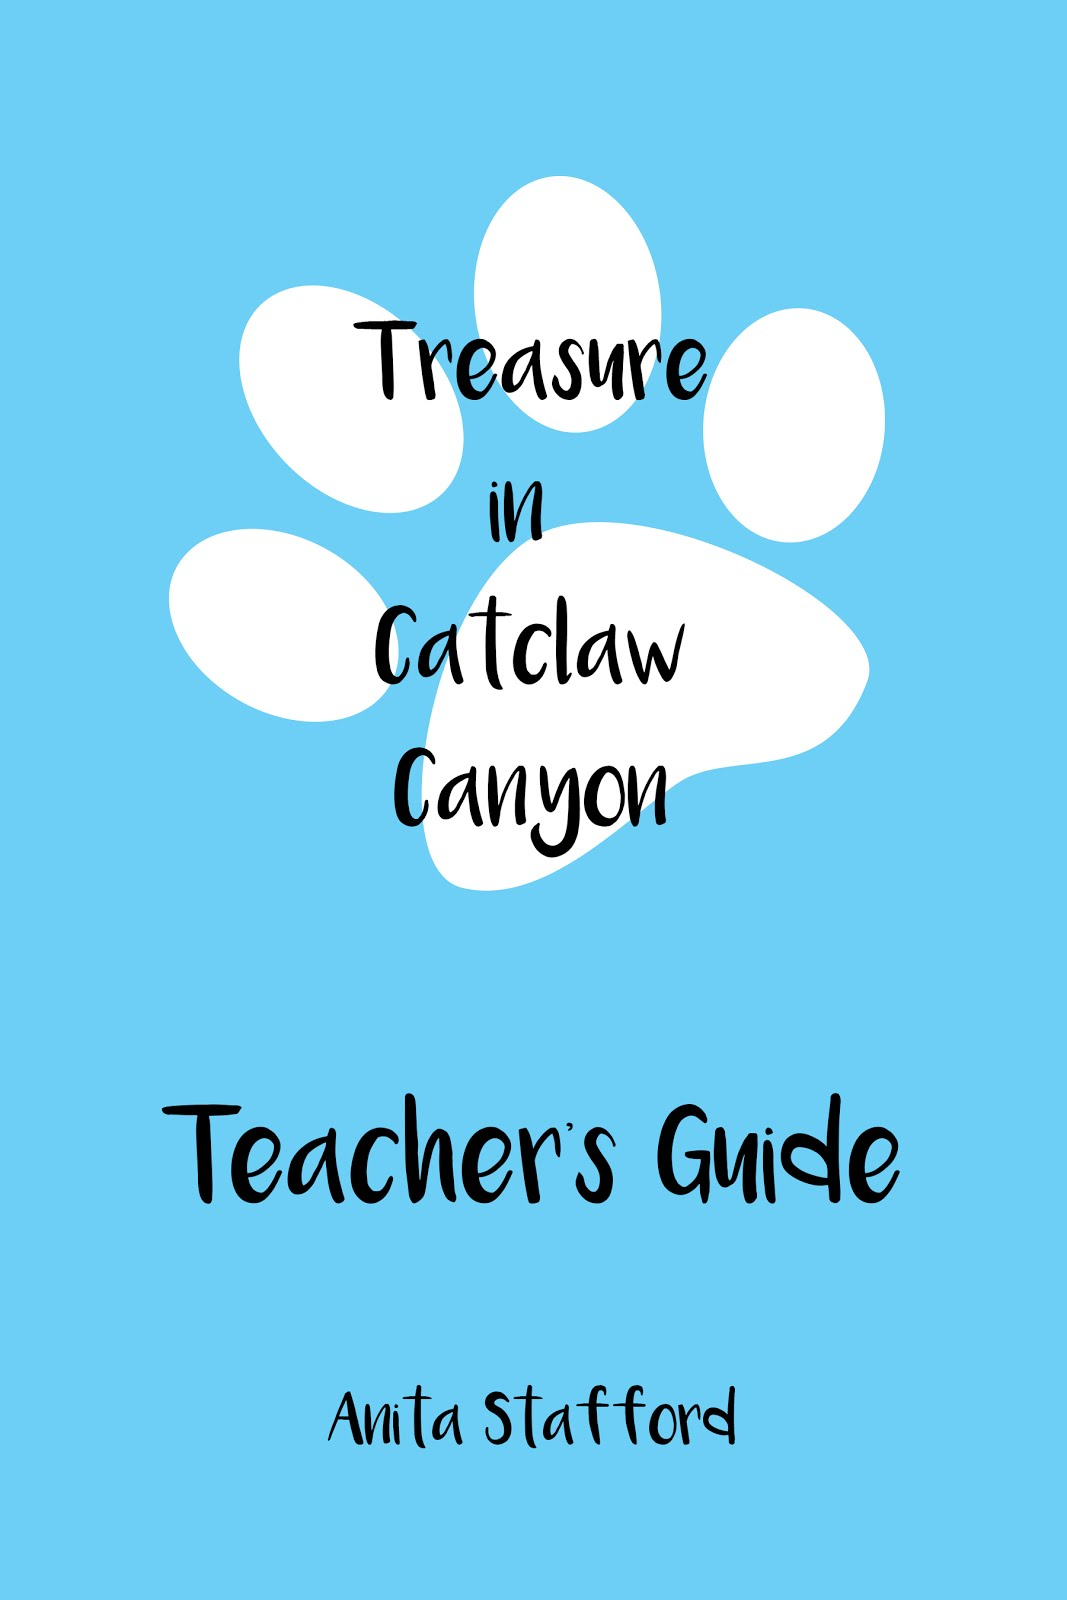 Treasure in Catclaw Canyon Teacher's Guide